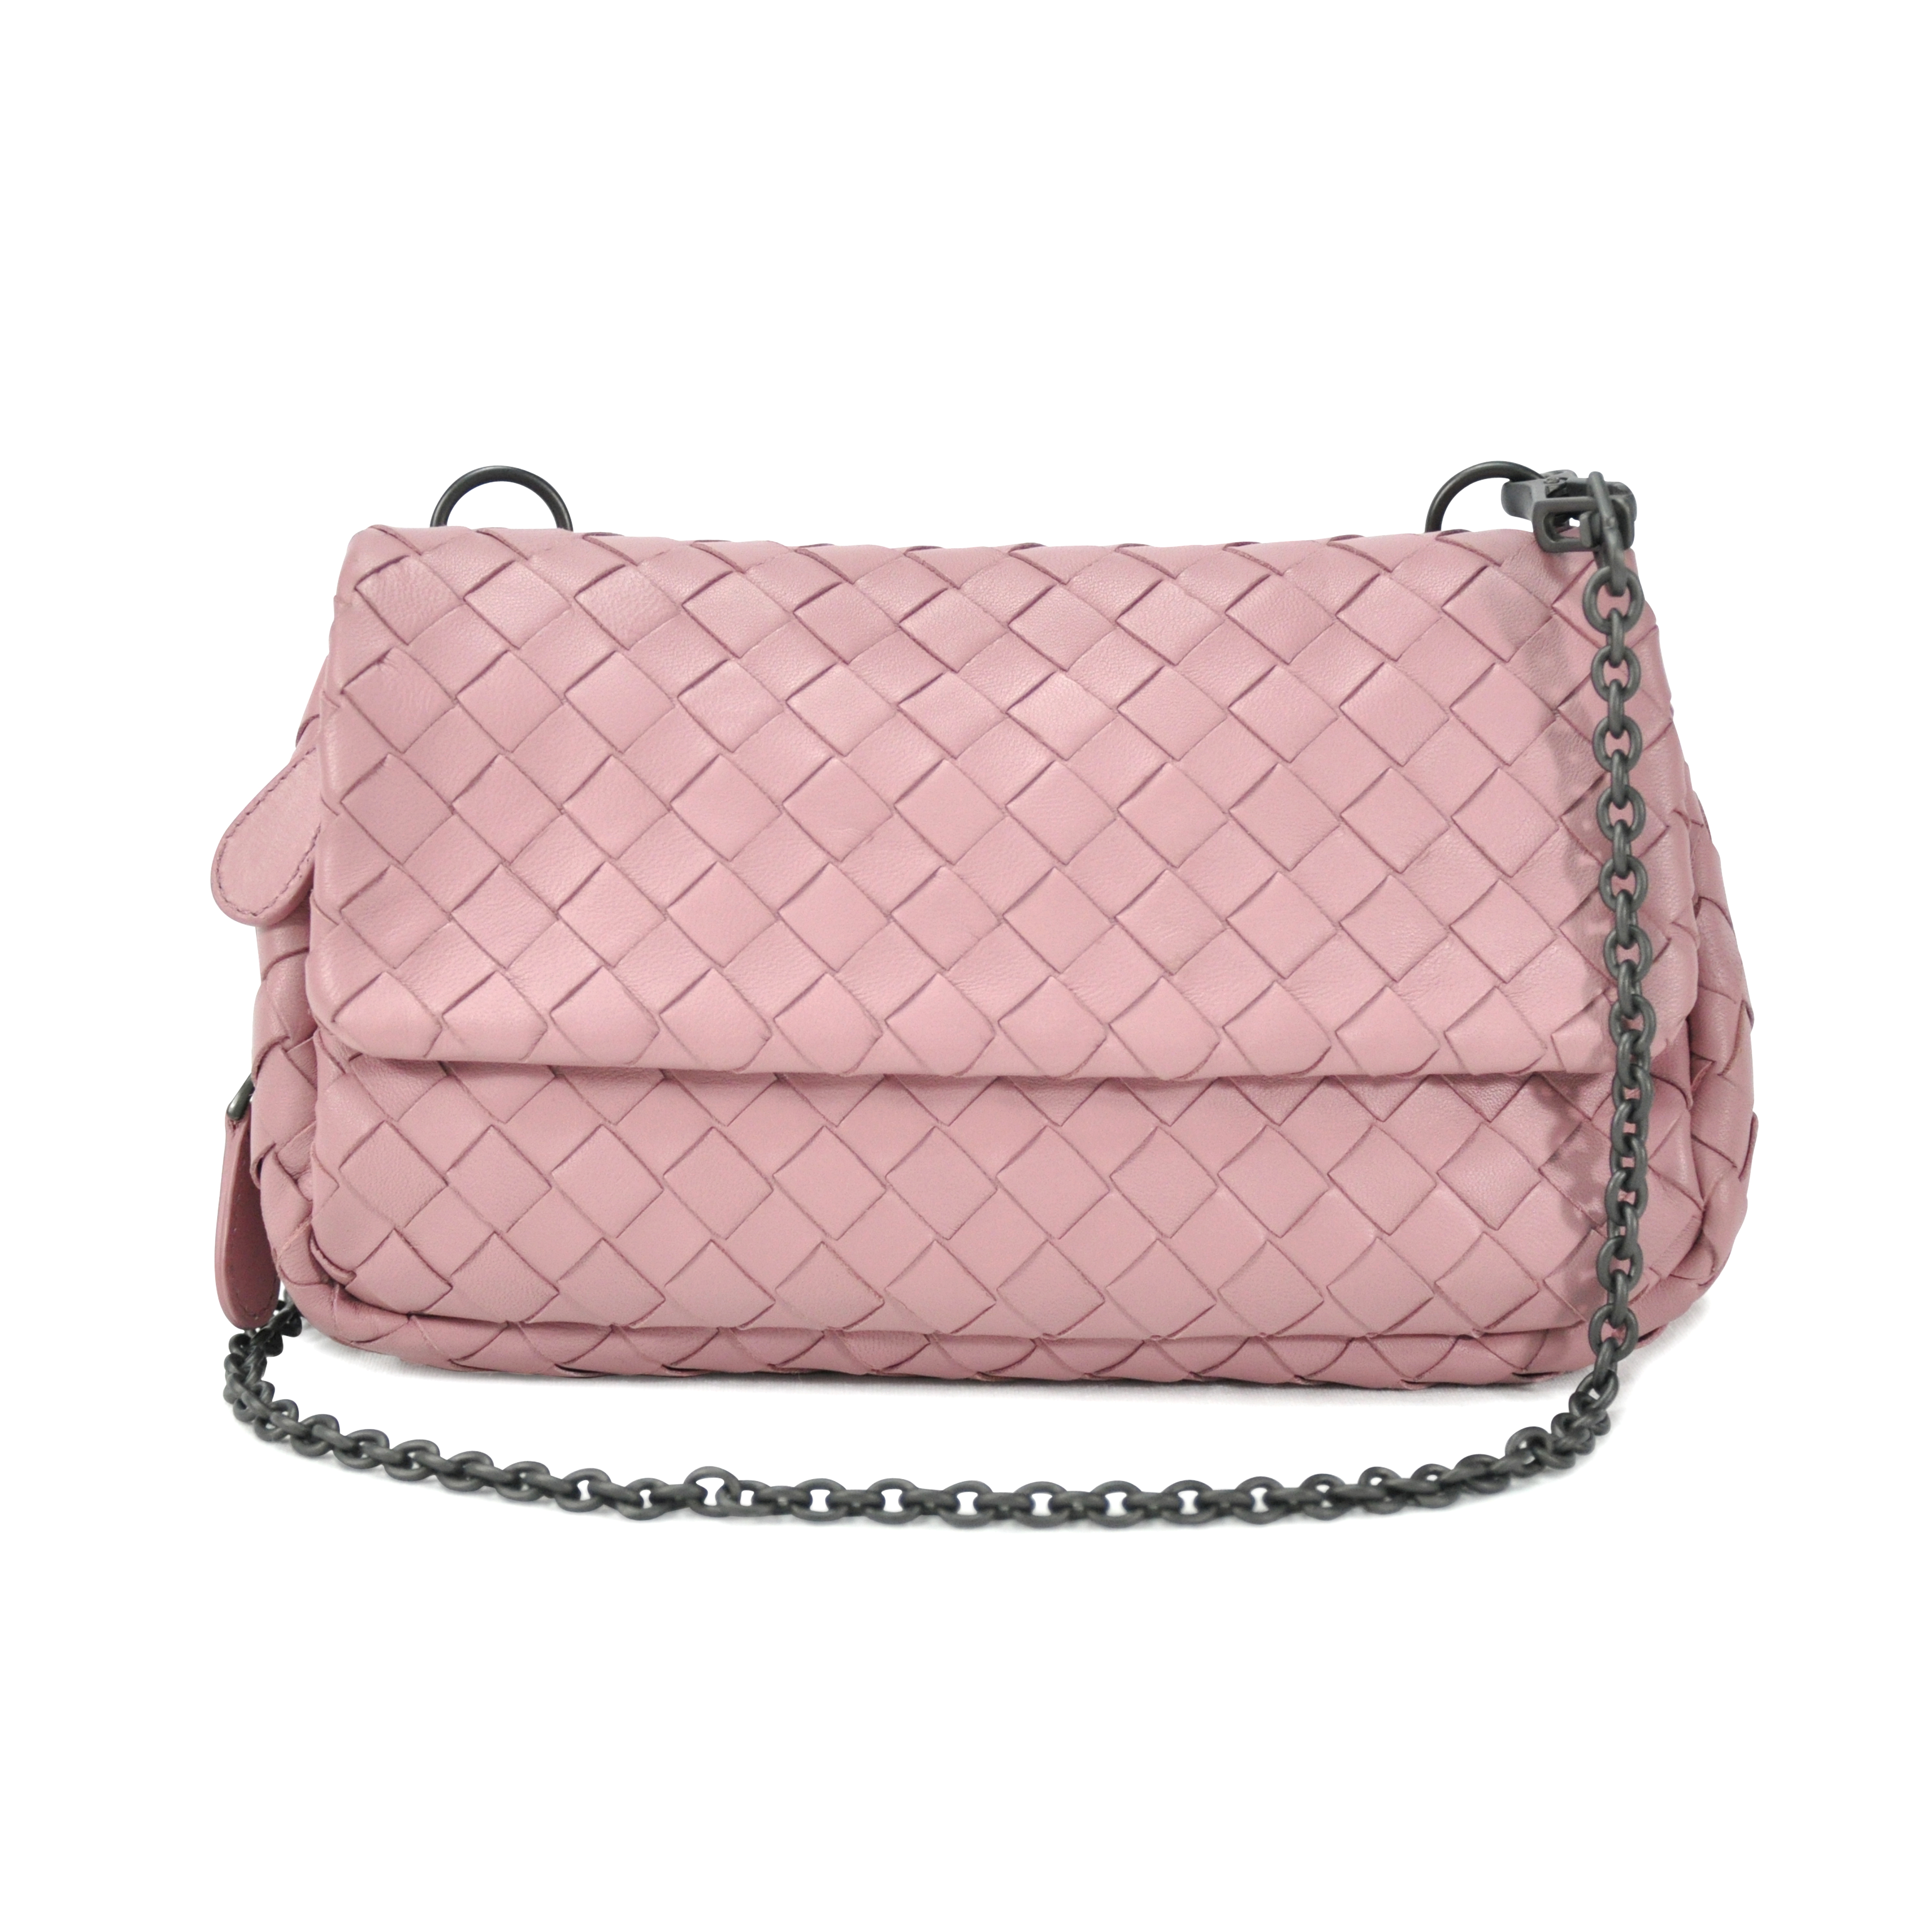 b73230eb975f Authentic Pre Owned Bottega Veneta Intrecciato Mini Crossbody Bag  (PSS-072-00014)